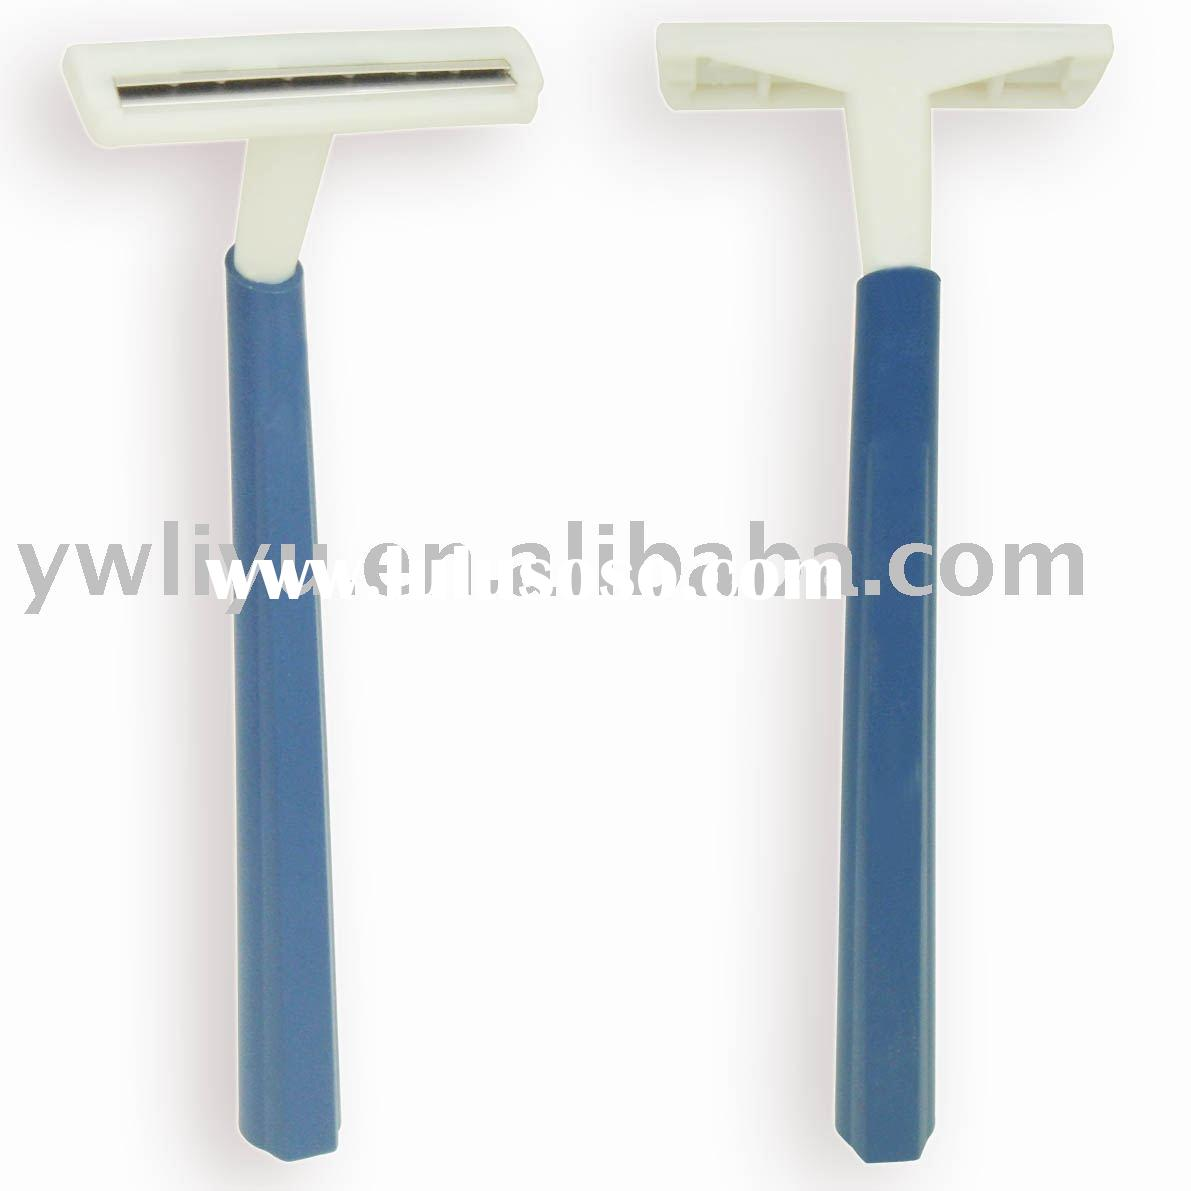 Disposable Razor,twin blade disposable razor,hotel razor,shaving razor